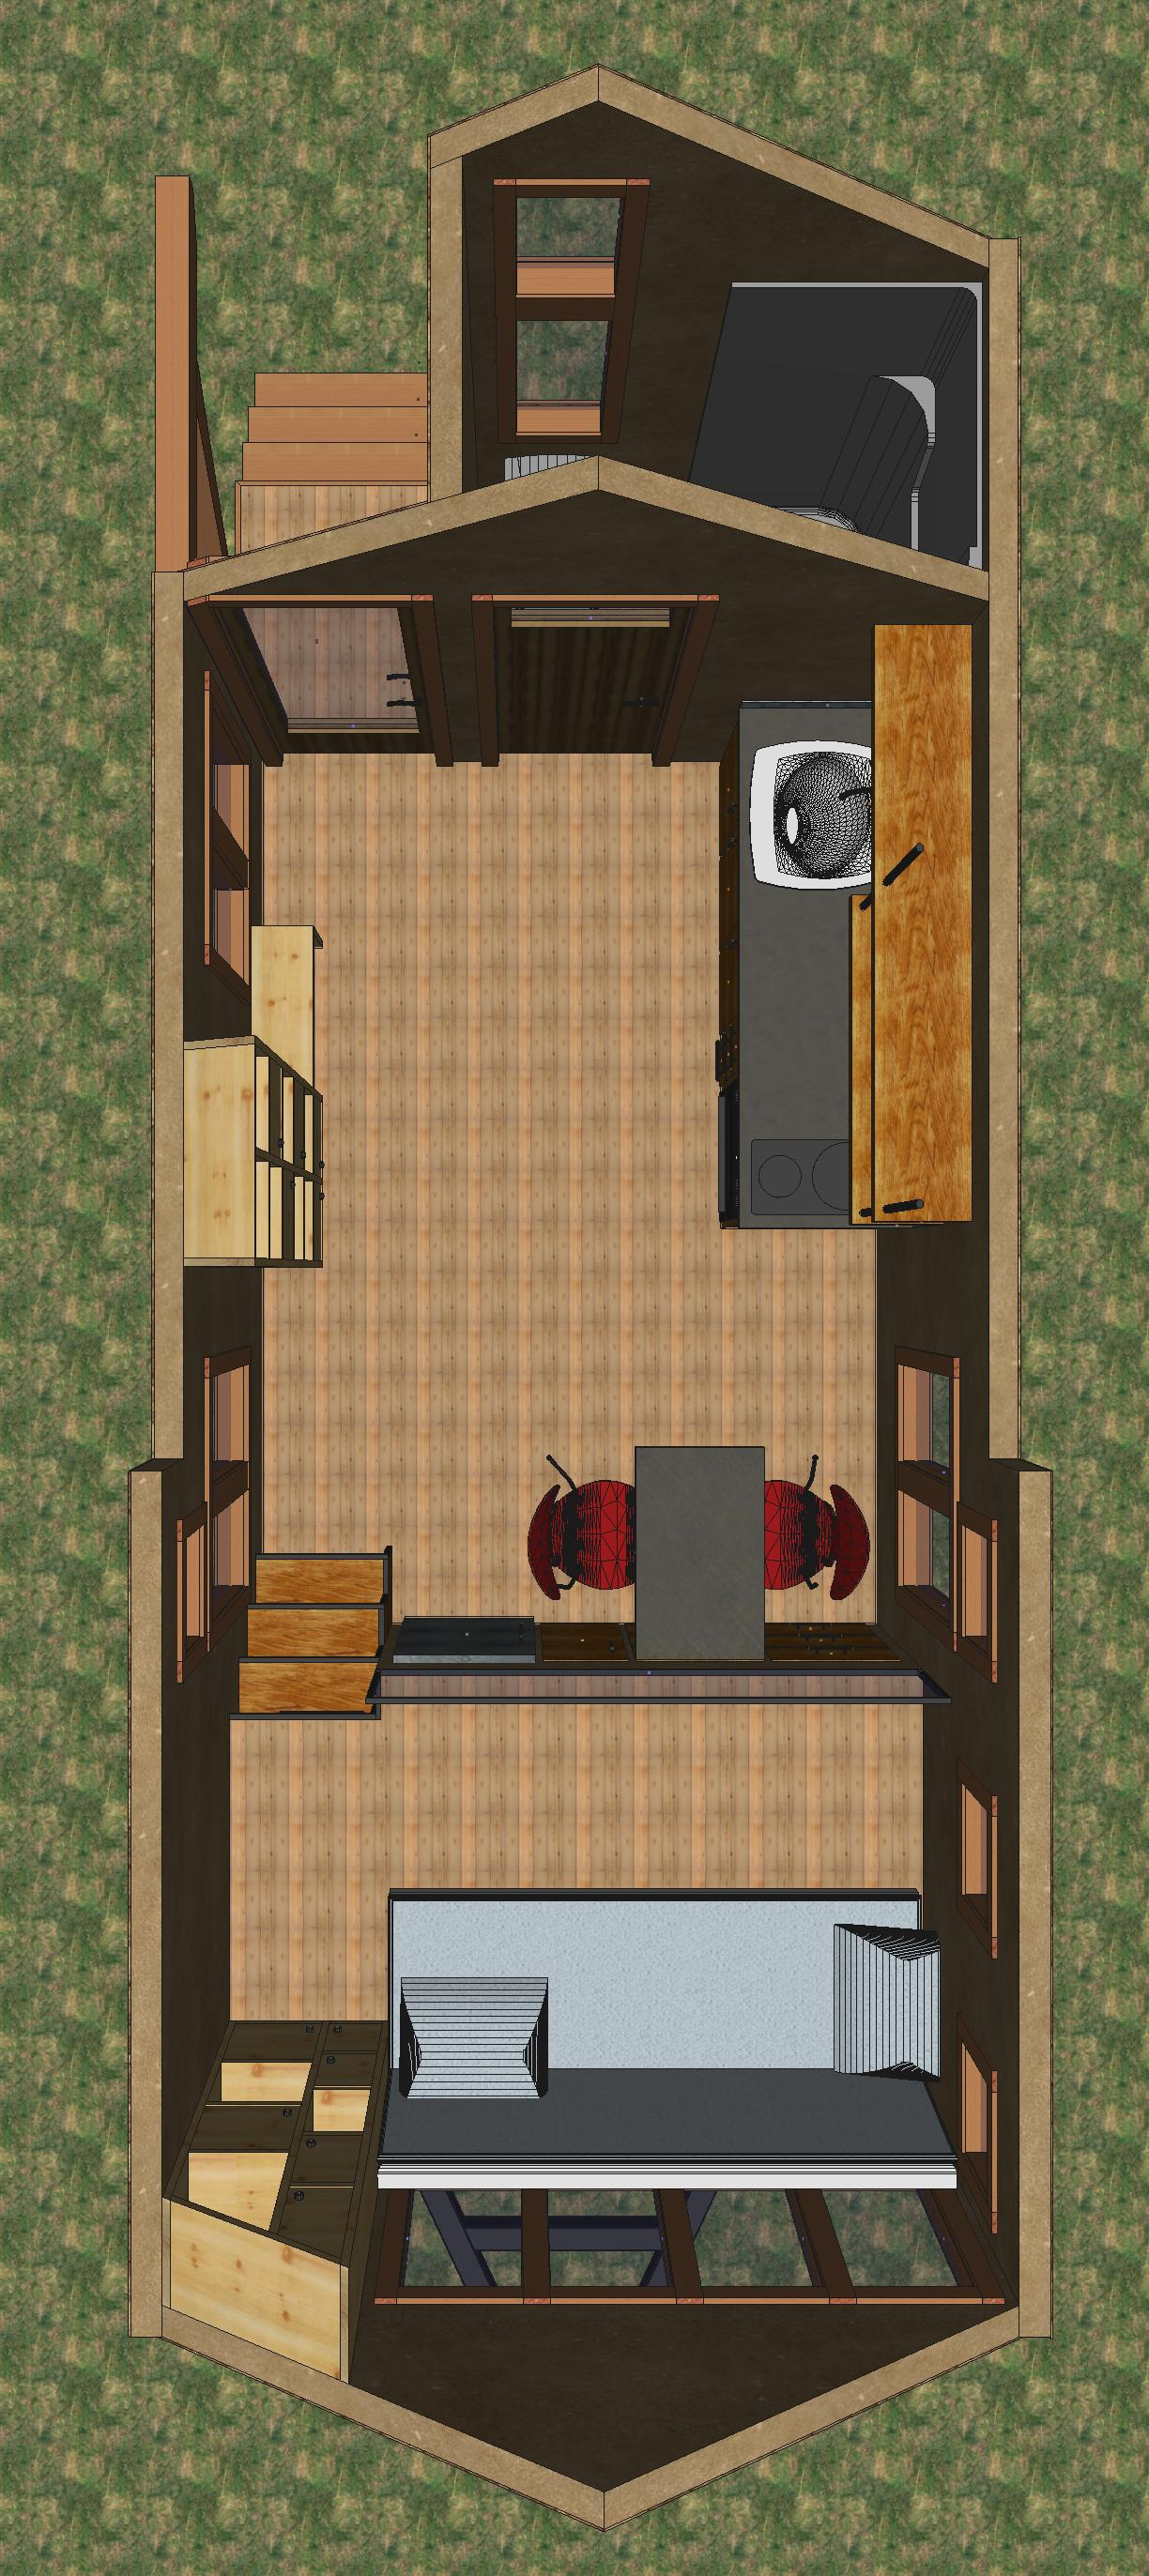 Homes with A View House Plans Awesome Plan Birds Eye View Tiny House Blog